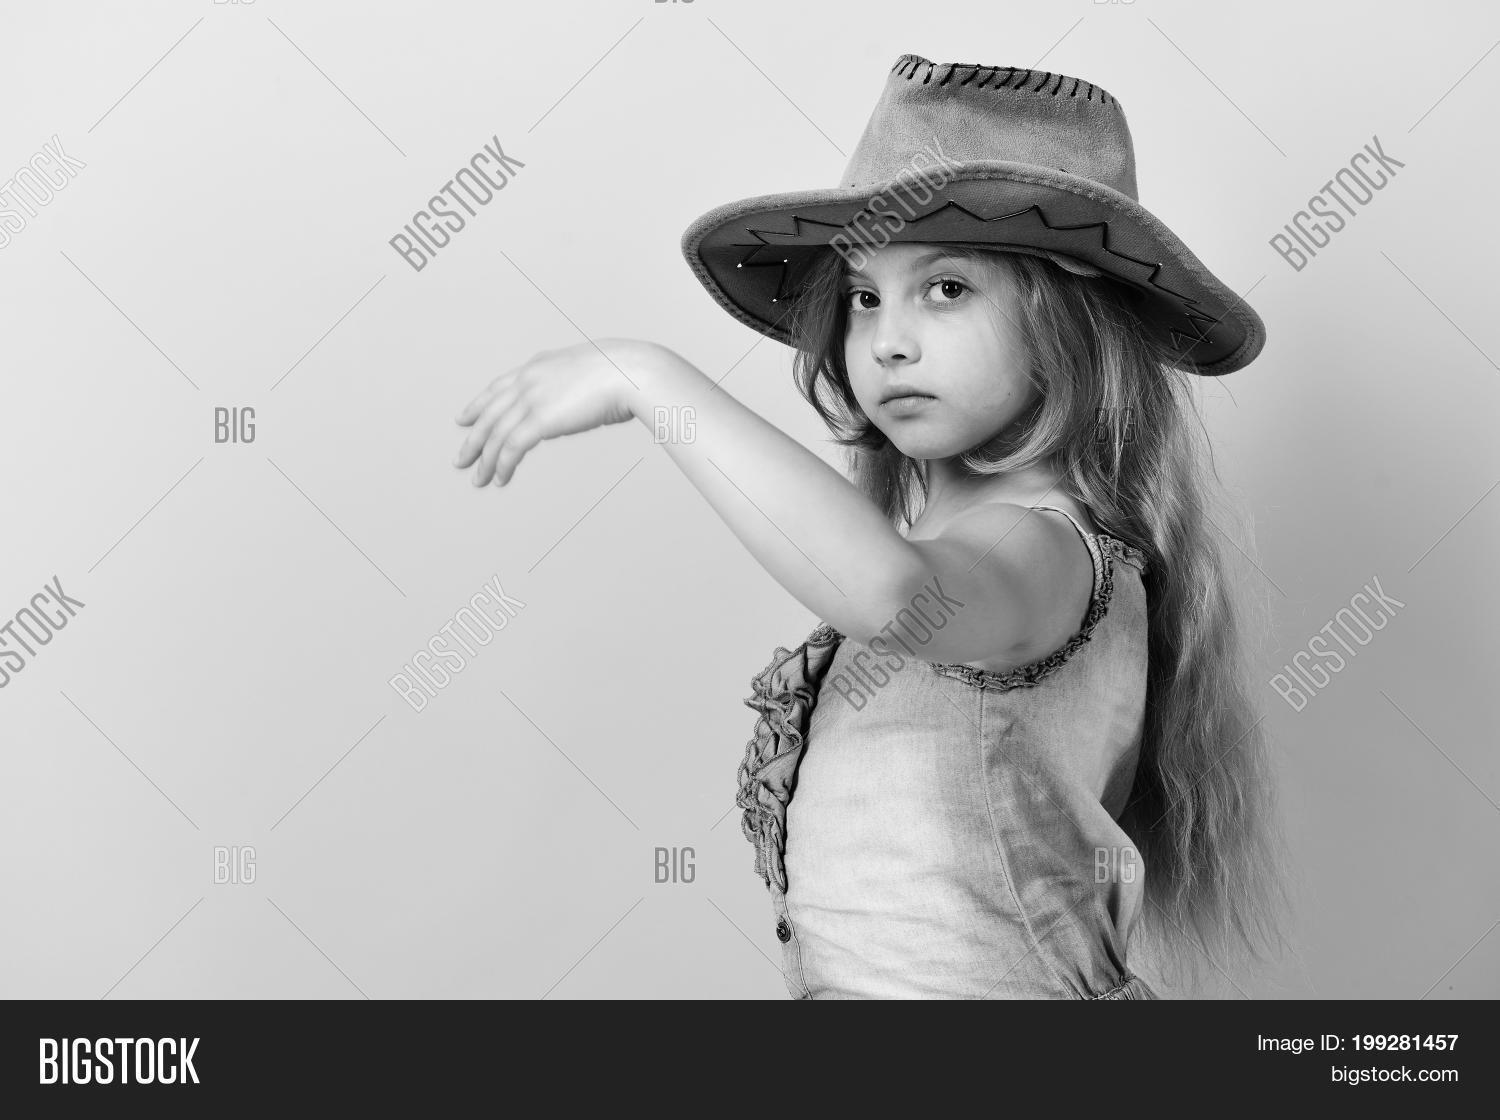 6bfc443e1e3ce Kid with serious face and long fair hair wears jeans dress. Fashion and  casual style concept. Girl in fancy outfit wears cowboy hat. Little lady in  stylish ...